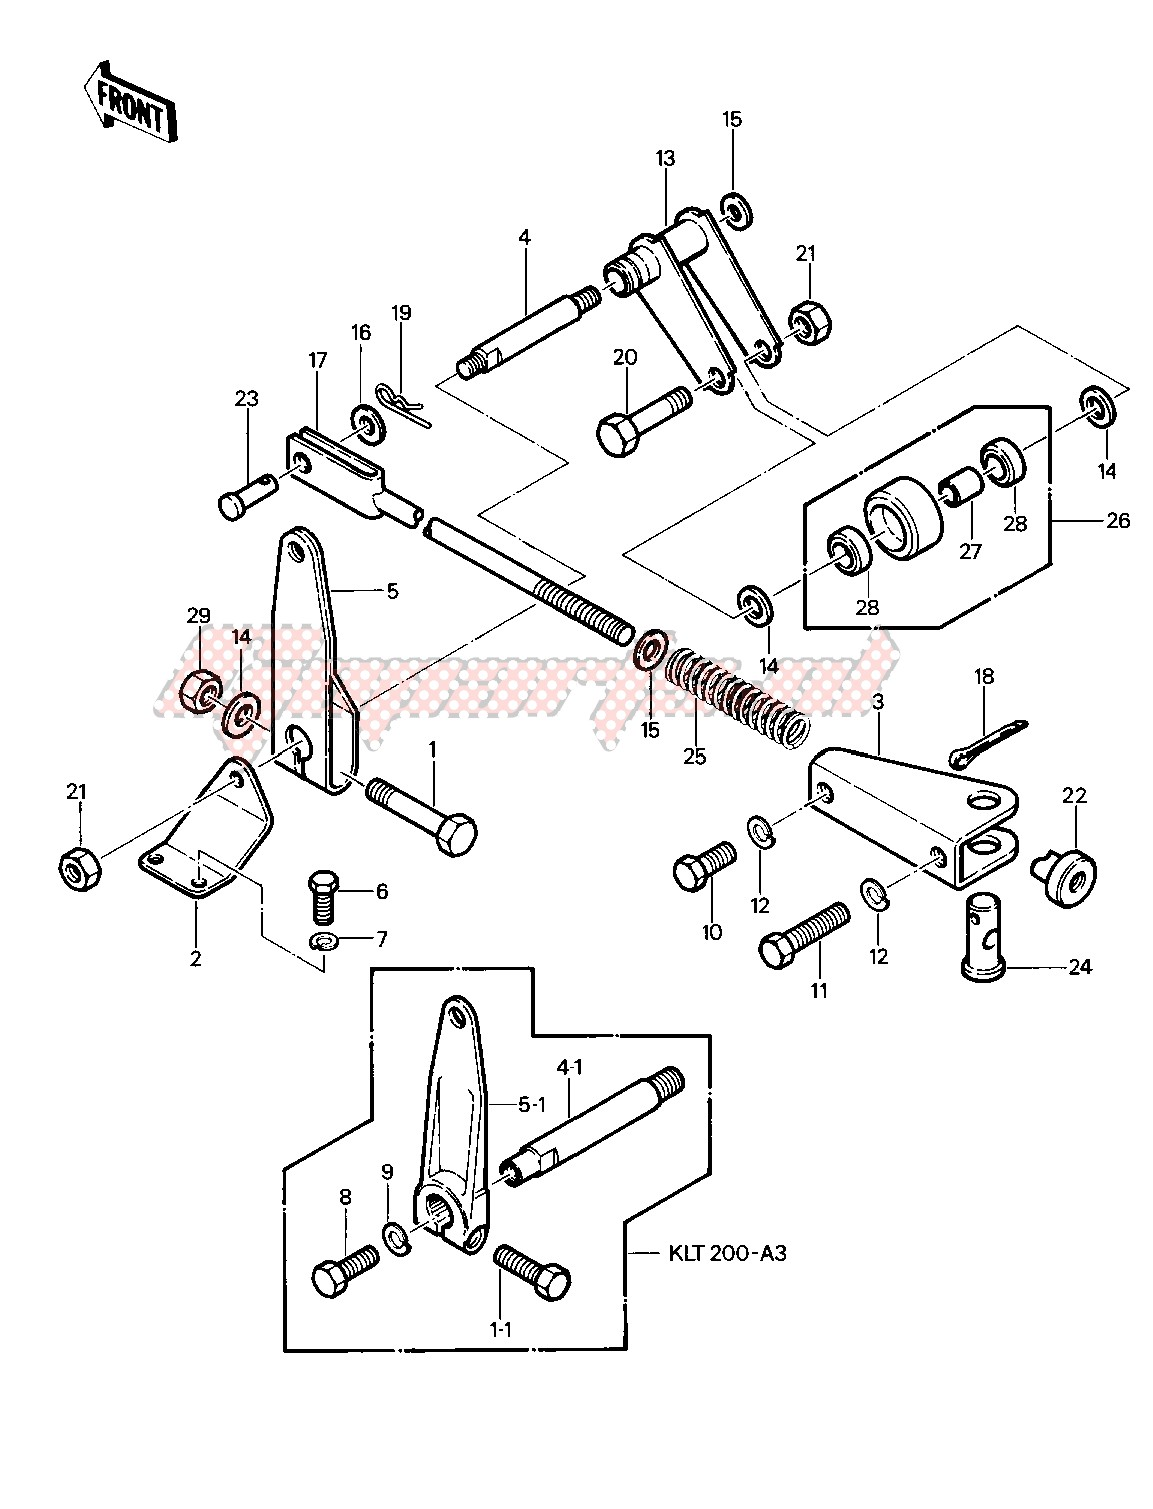 CHAIN TENSIONER -- 81-82 KLT200-A1_A2_A3- - image